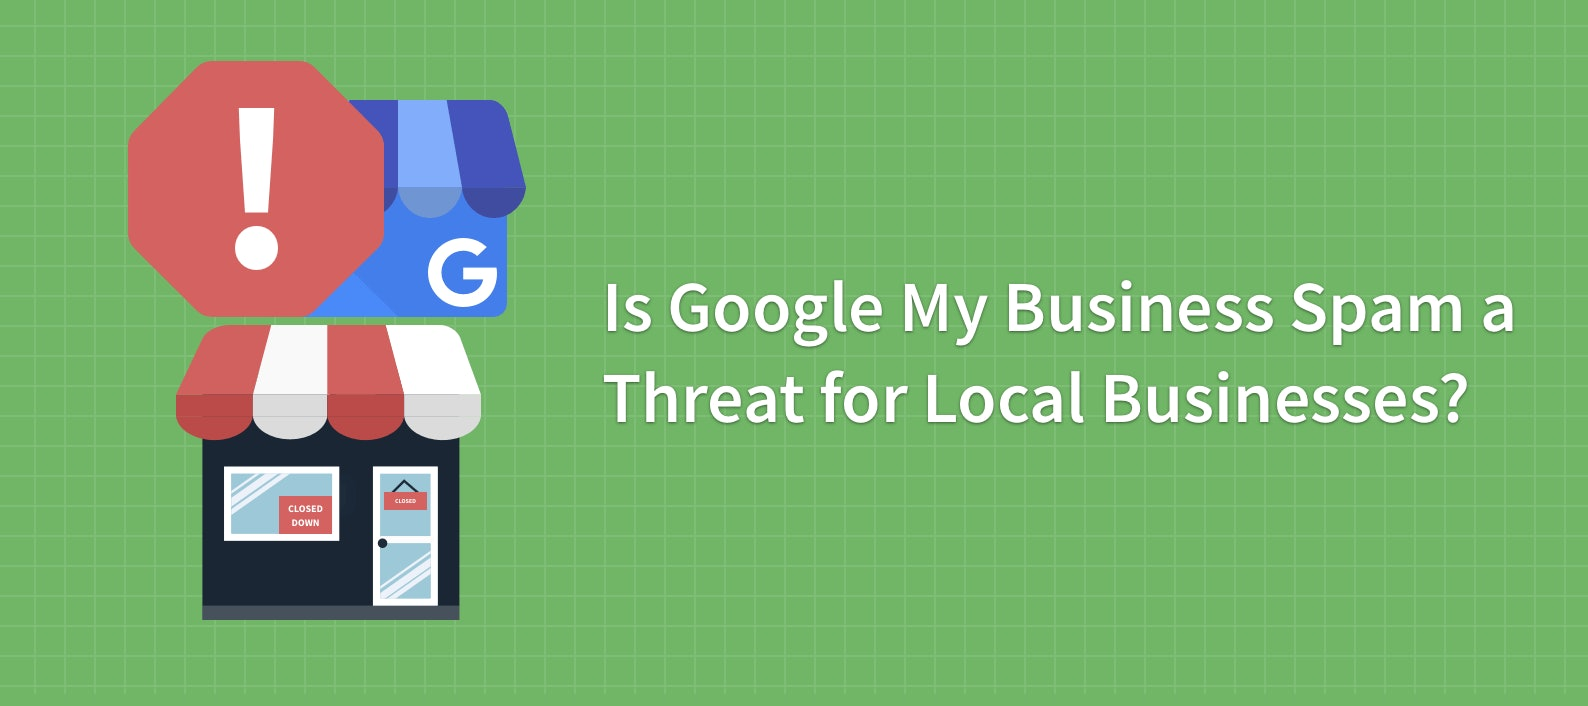 Poll Results: Is Google My Business Spam a Threat for Local Businesses?